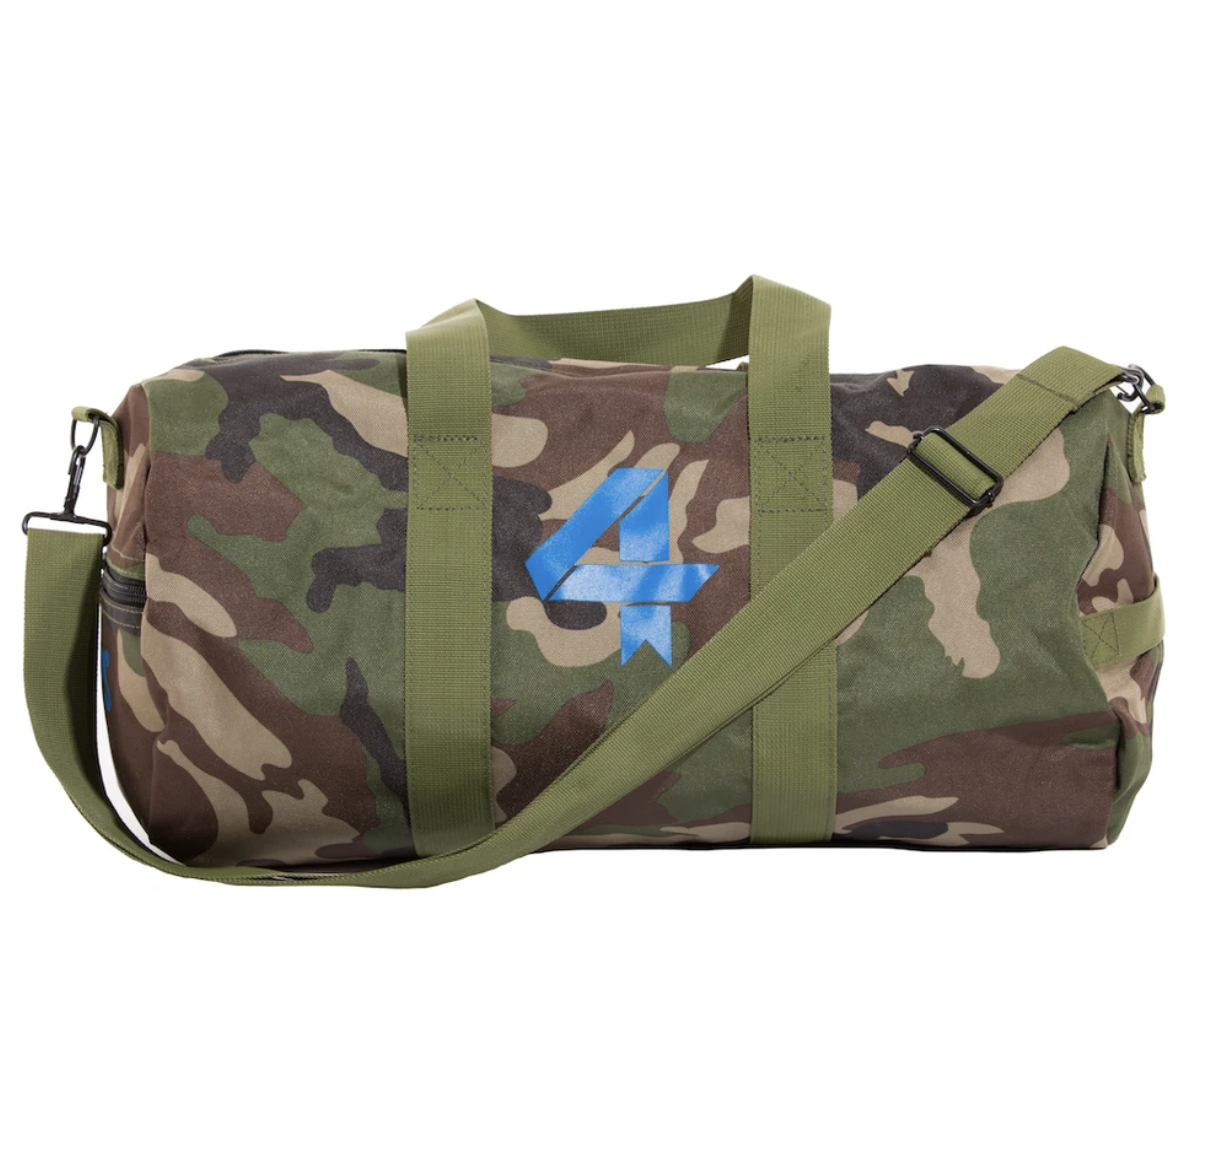 Signature Duffel Bag